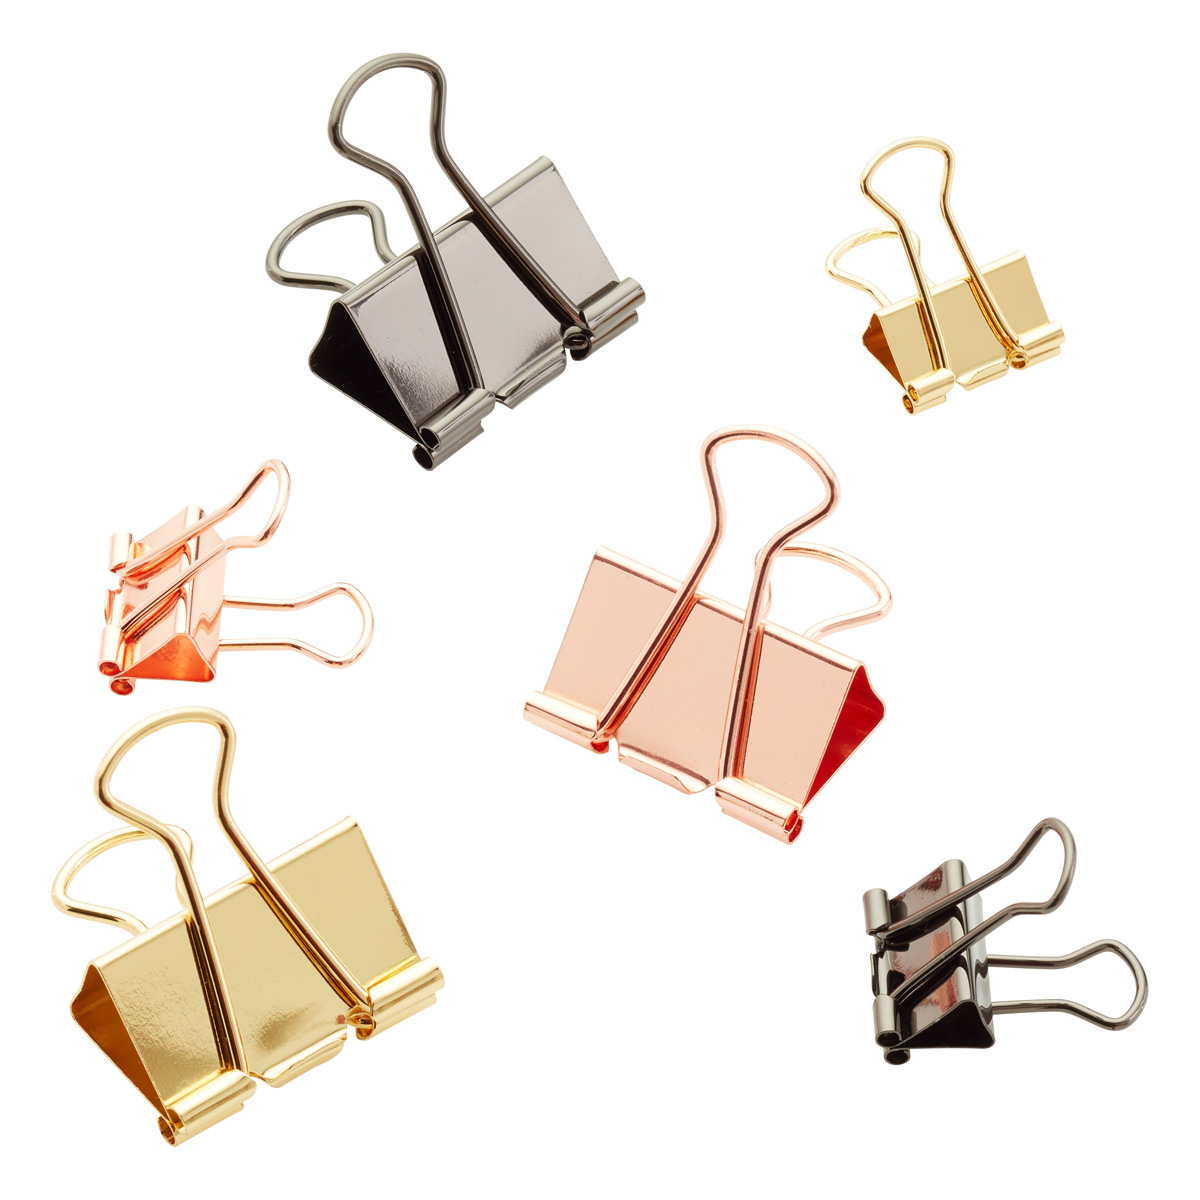 Metallic Binder Clips